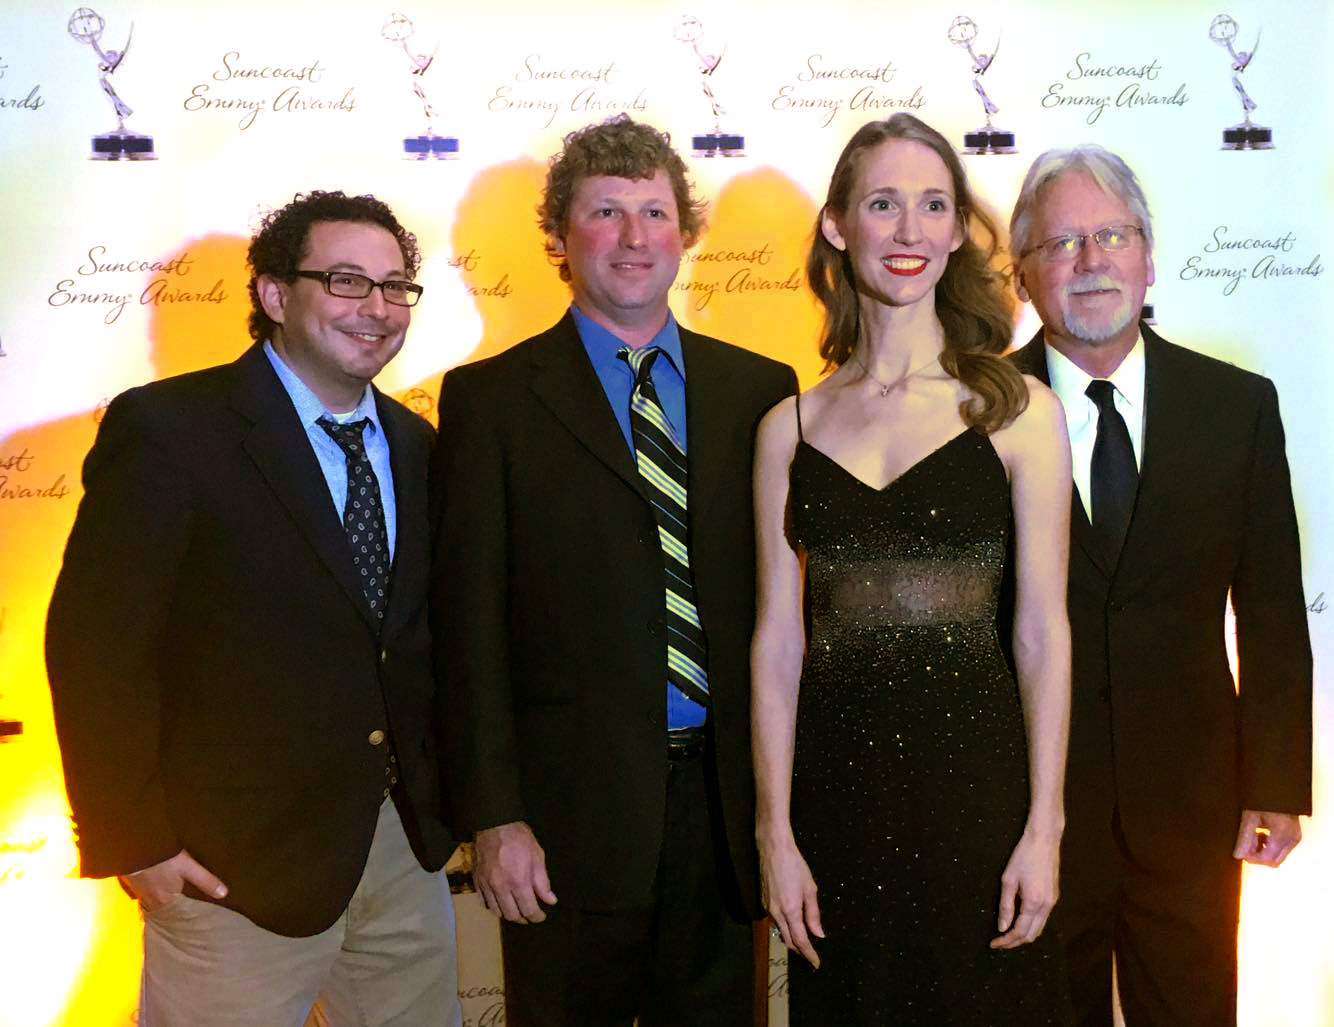 Belle and the Band poses at the Suncoast Regional Emmy� Awards. Later in the evening, they would win an award for their Local Routes theme.